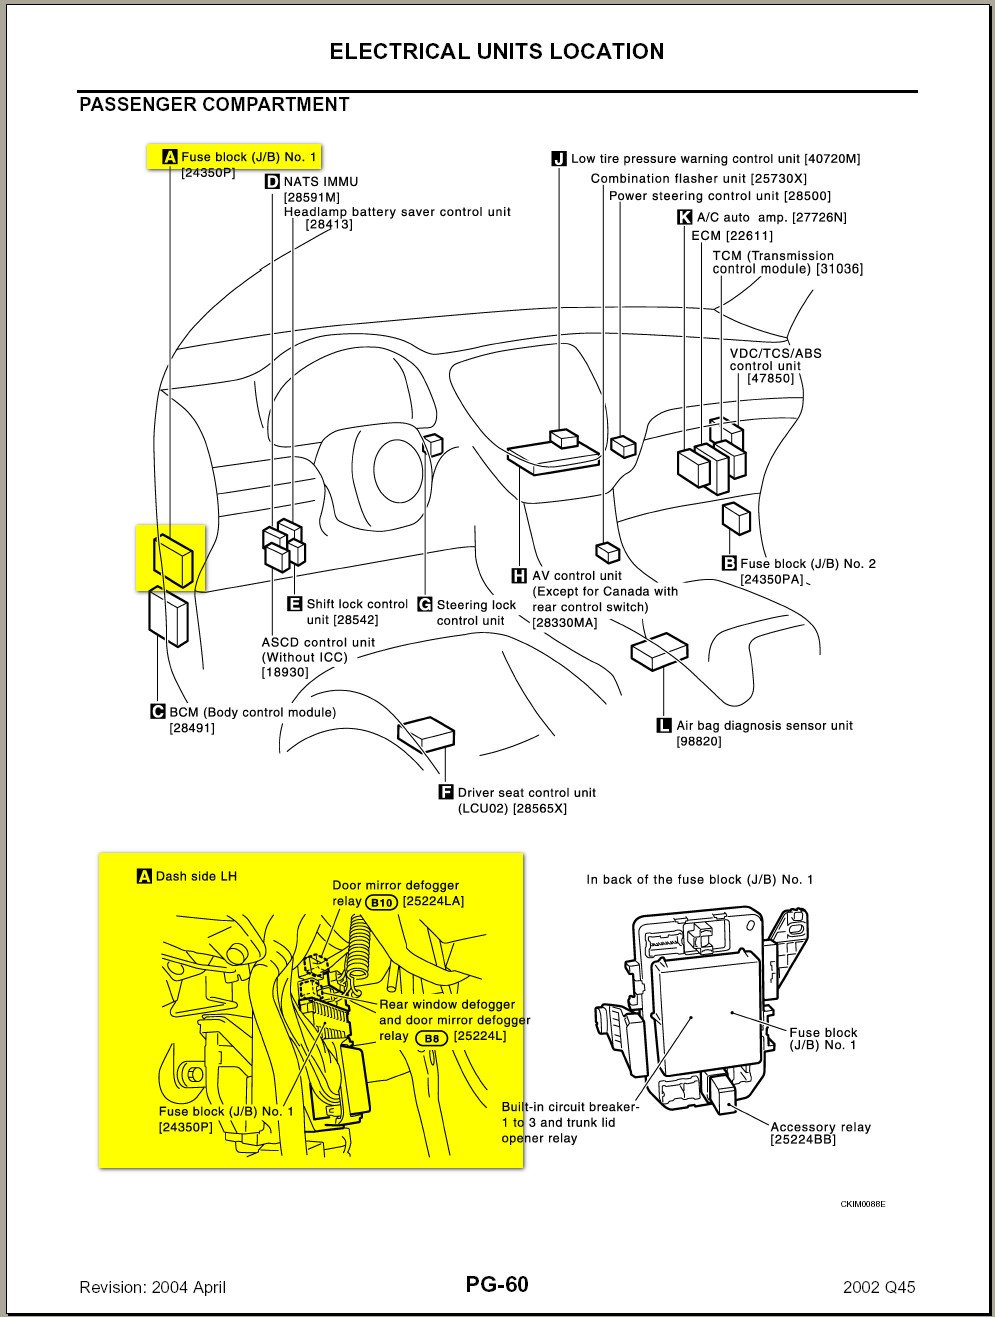 medium resolution of infiniti qx56 fuse diagram infiniti qx56 fuse map 1998 infiniti q45 fuse box diagram 2003 infiniti